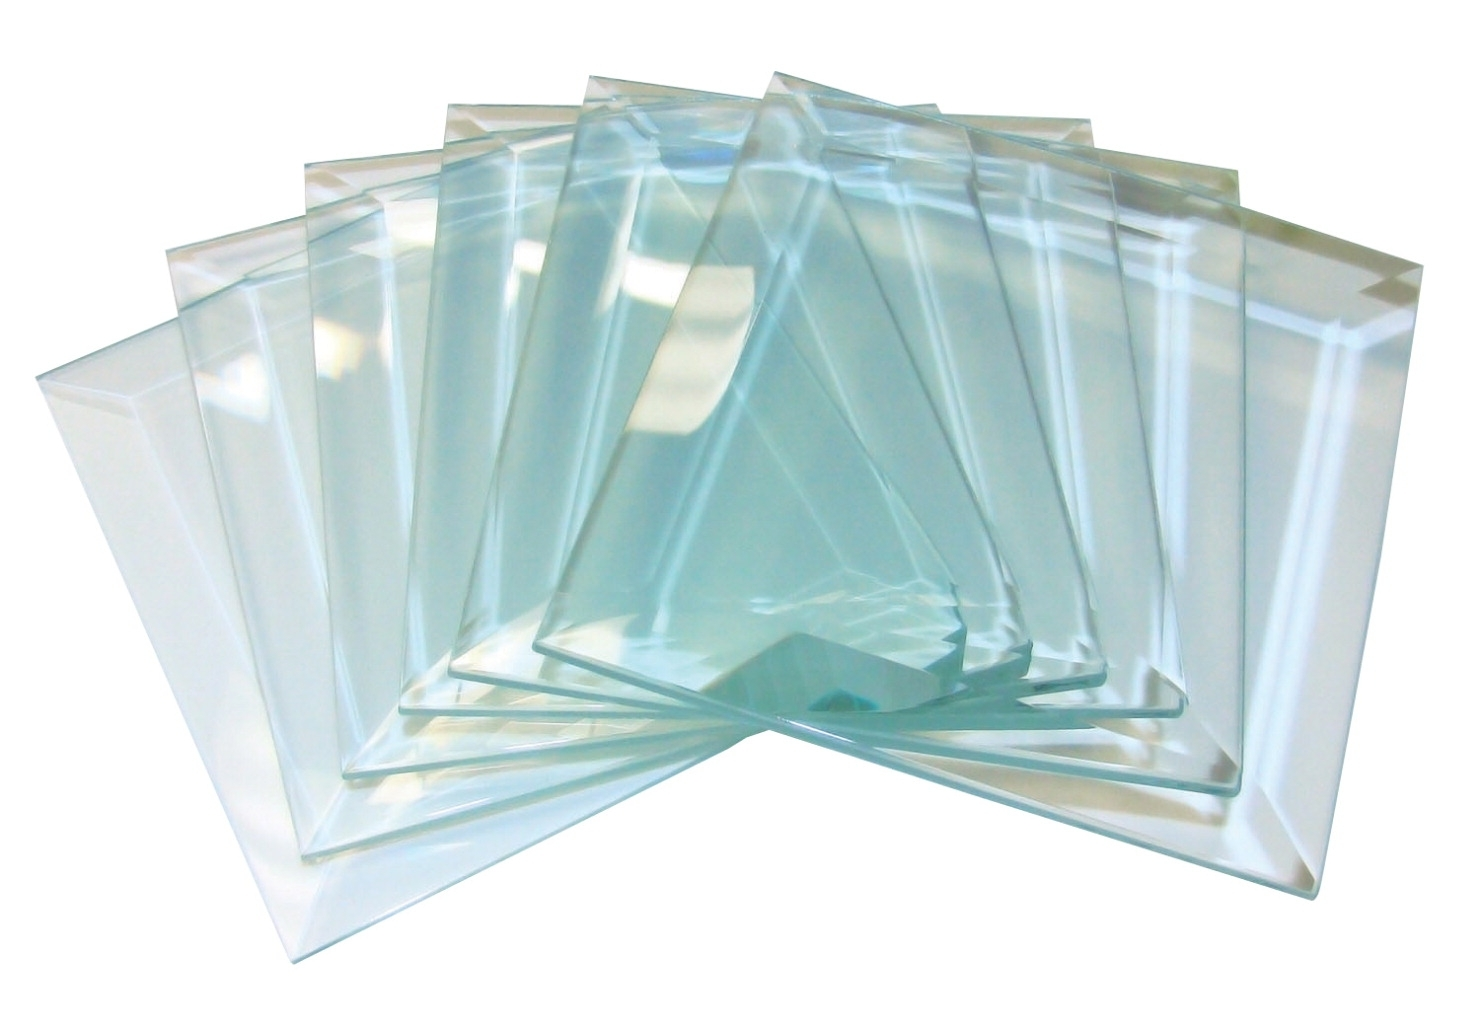 Learning: Supplies Art & Craft Supplies Glass Fusing Supplies & Kits - 406260 - School Specialty Glass Square Bevel; 4 X 4 In; Clear; Set Of 6 406260